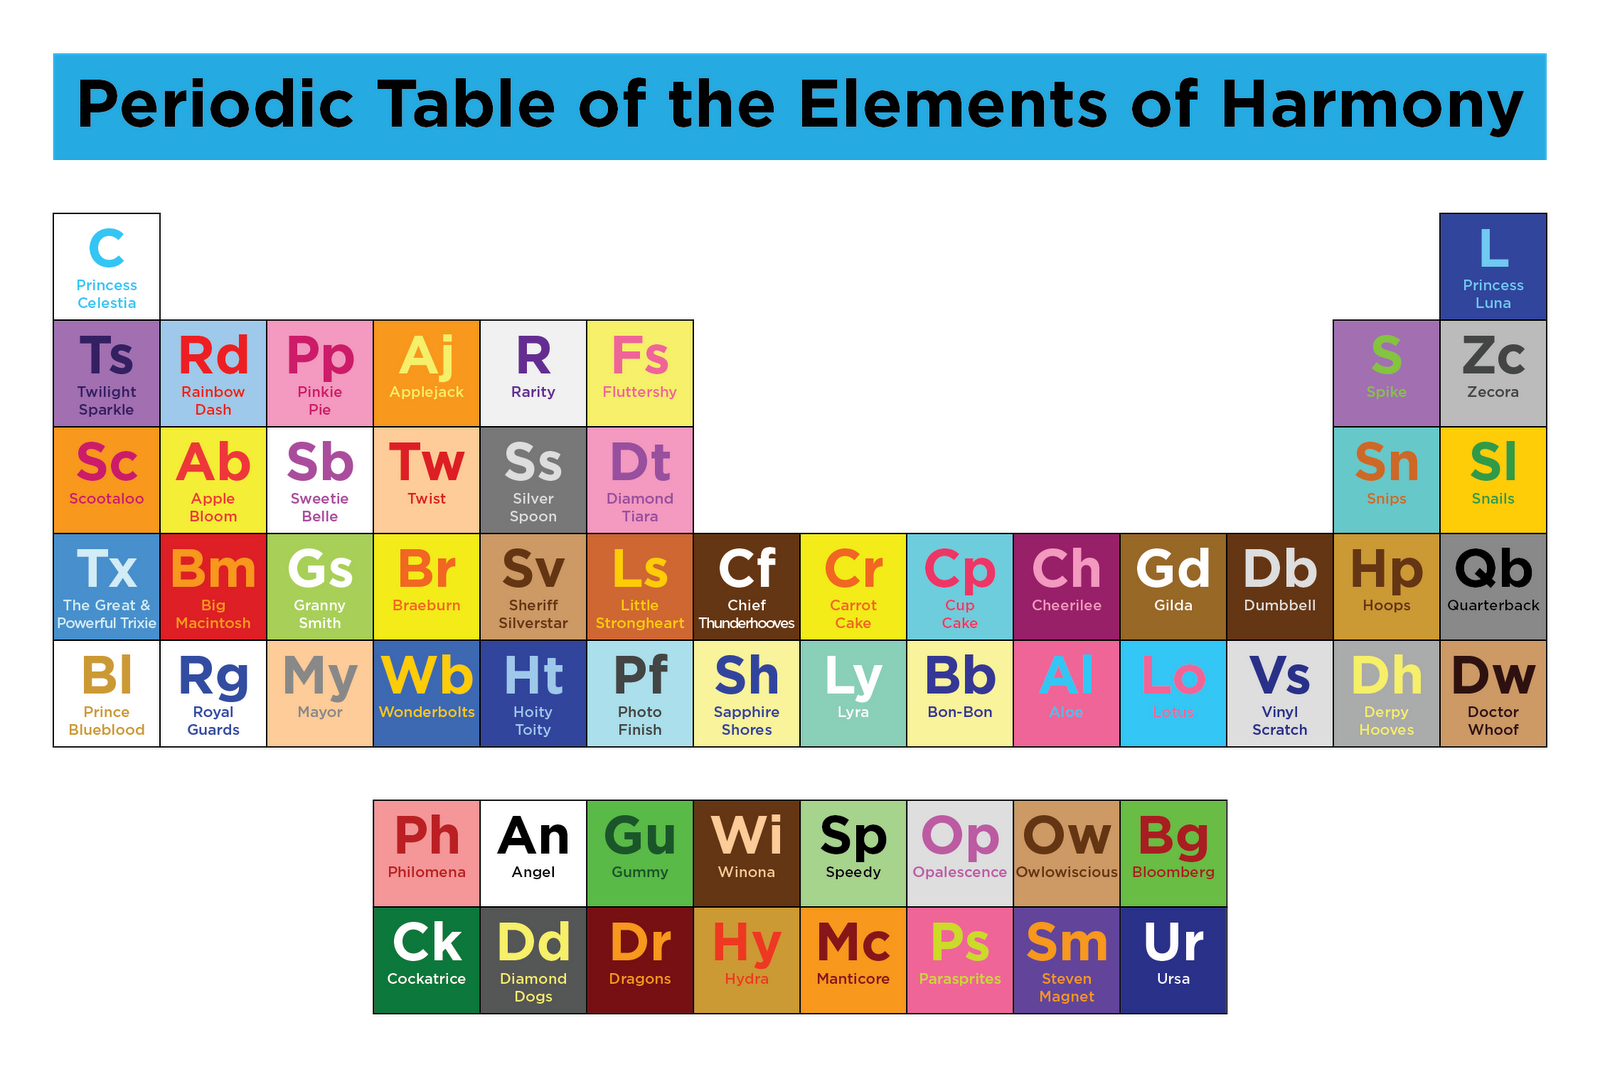 Image 759868 periodic table parodies know your meme periodic table of the elements of harmony princess celestia princess luna r fs twilight sparkle rainbow gamestrikefo Images